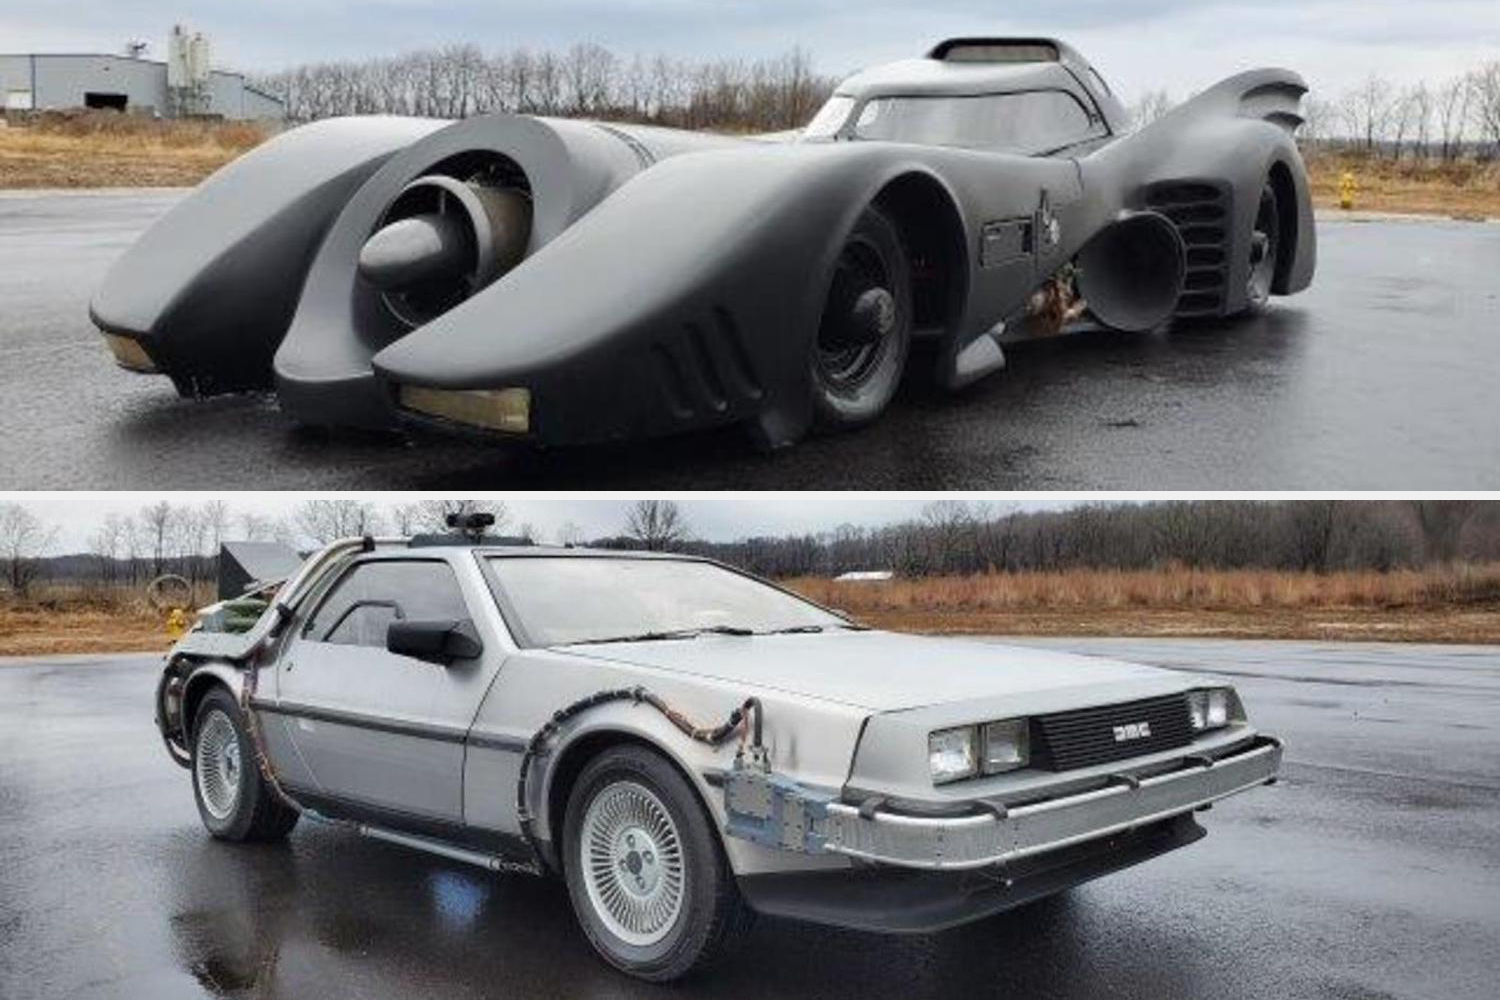 Batmobile movie replica and DeLorean Back to the Future replica